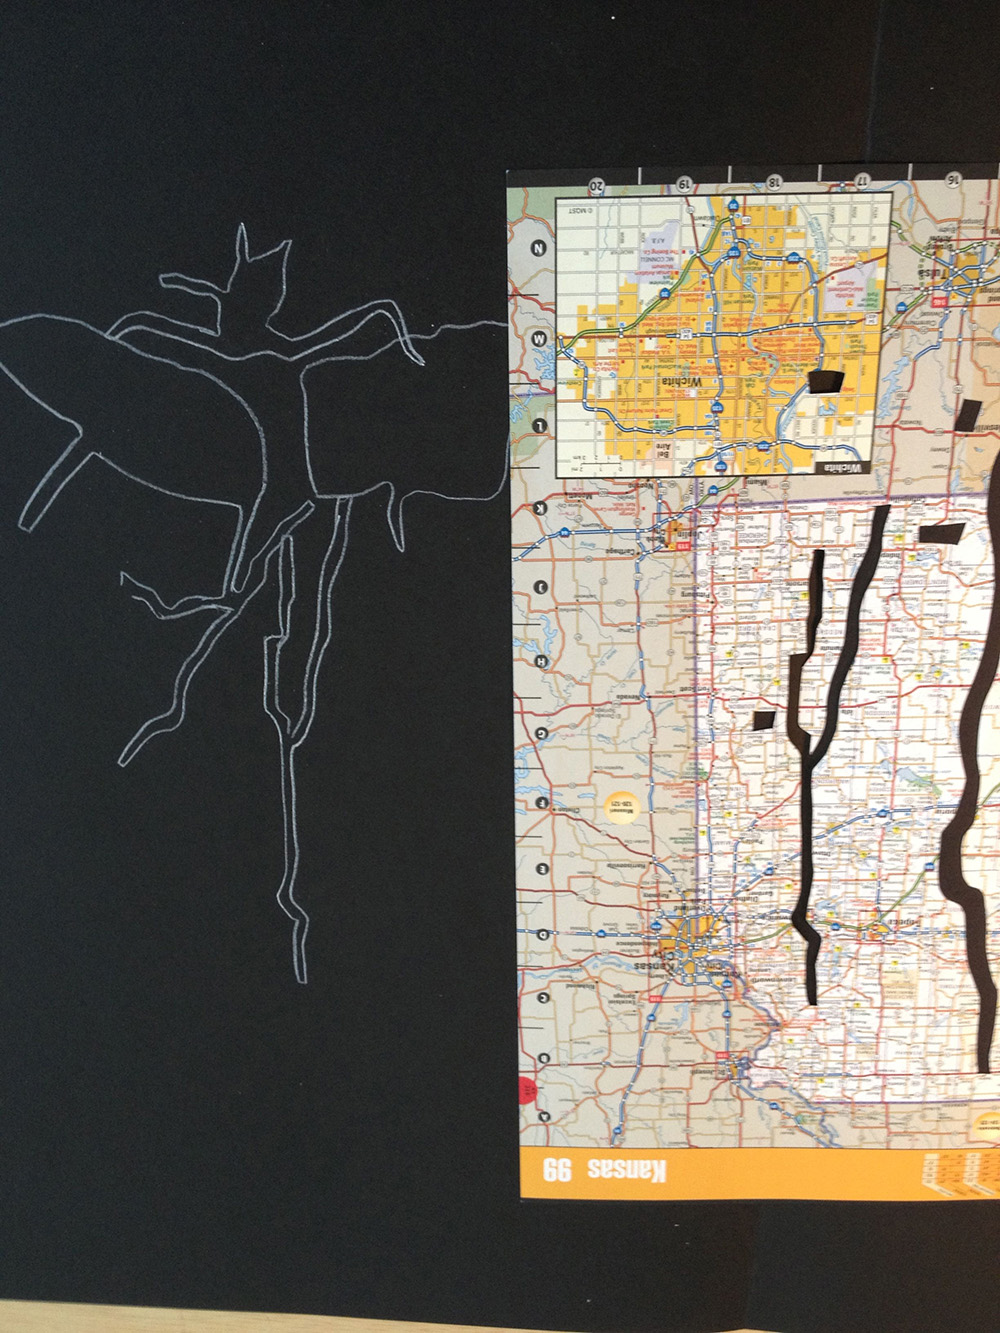 Working on the first Travel Hex drawing by tracing the removed road cut outs from the atlas.